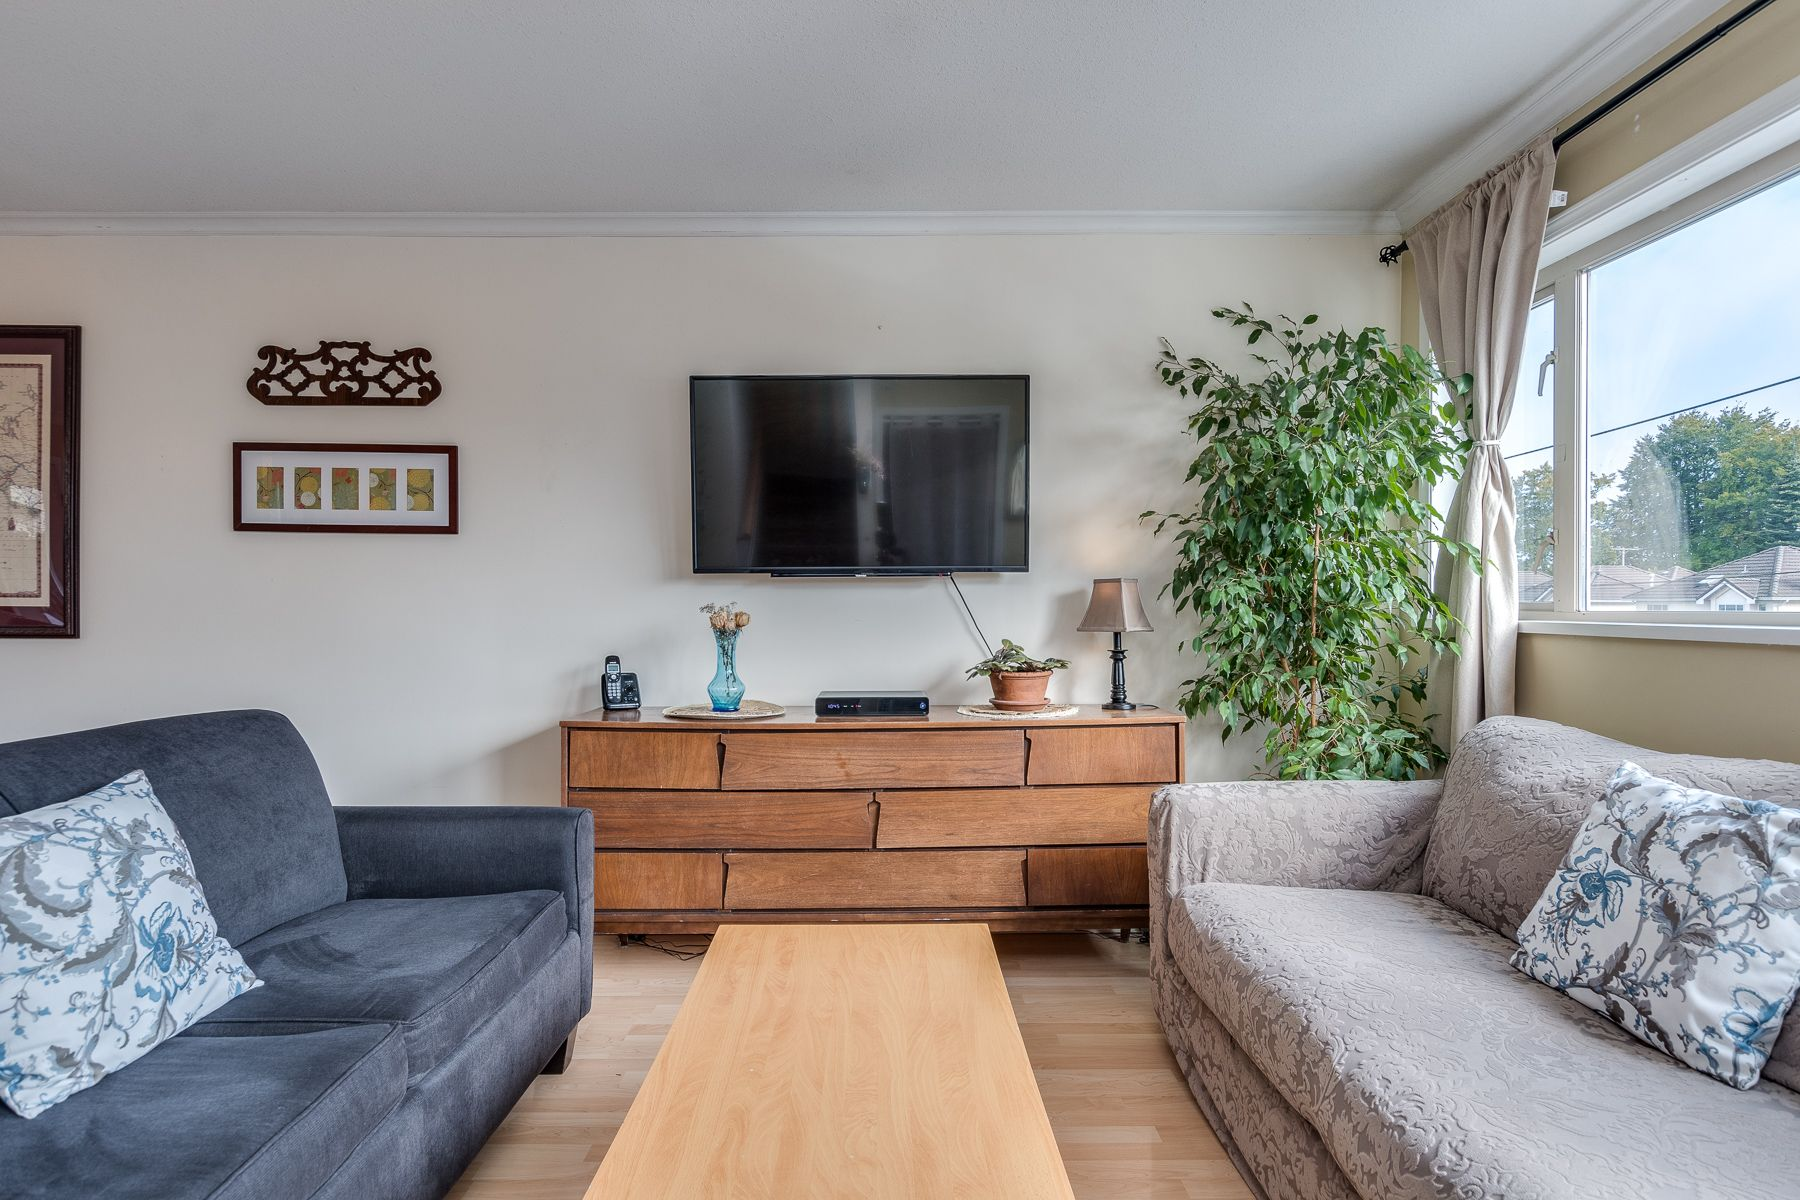 Photo 11: Photos: 7-2389 Charles St in Vancouver: Grandview Woodland Townhouse for sale (Vancouver East)